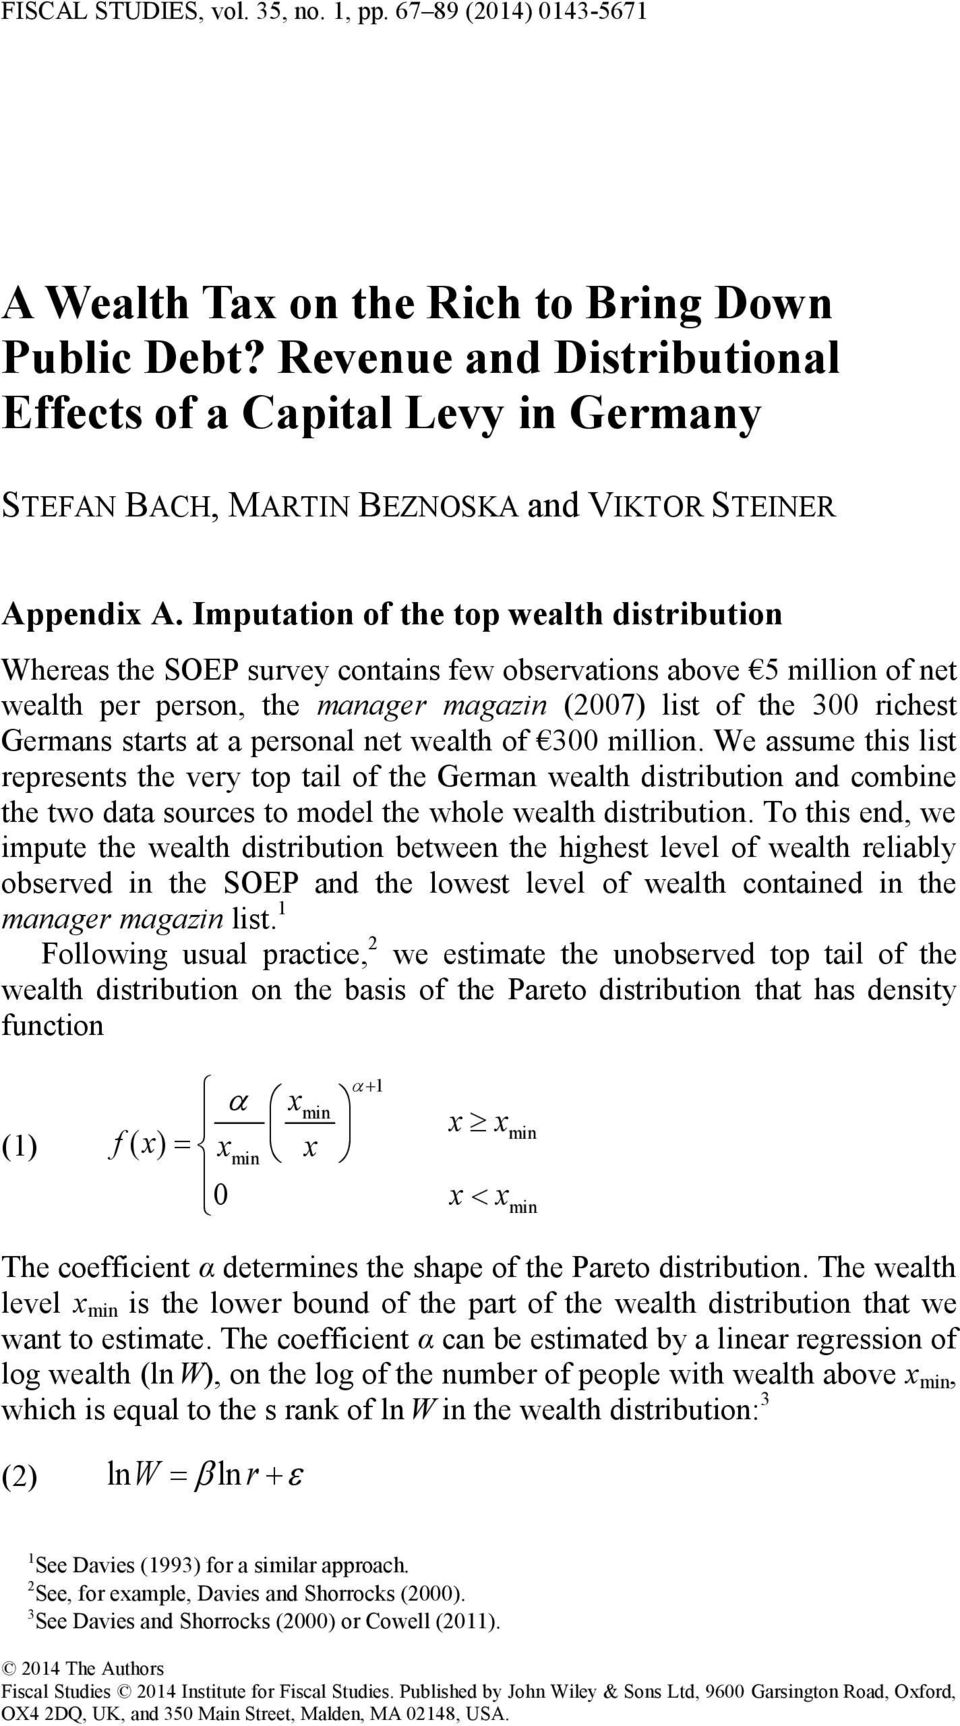 Imputation of the top wealth distribution Whereas the SOEP survey contains few observations above 5 million of net wealth per person, the manager magazin (2007) list of the 300 richest Germans starts